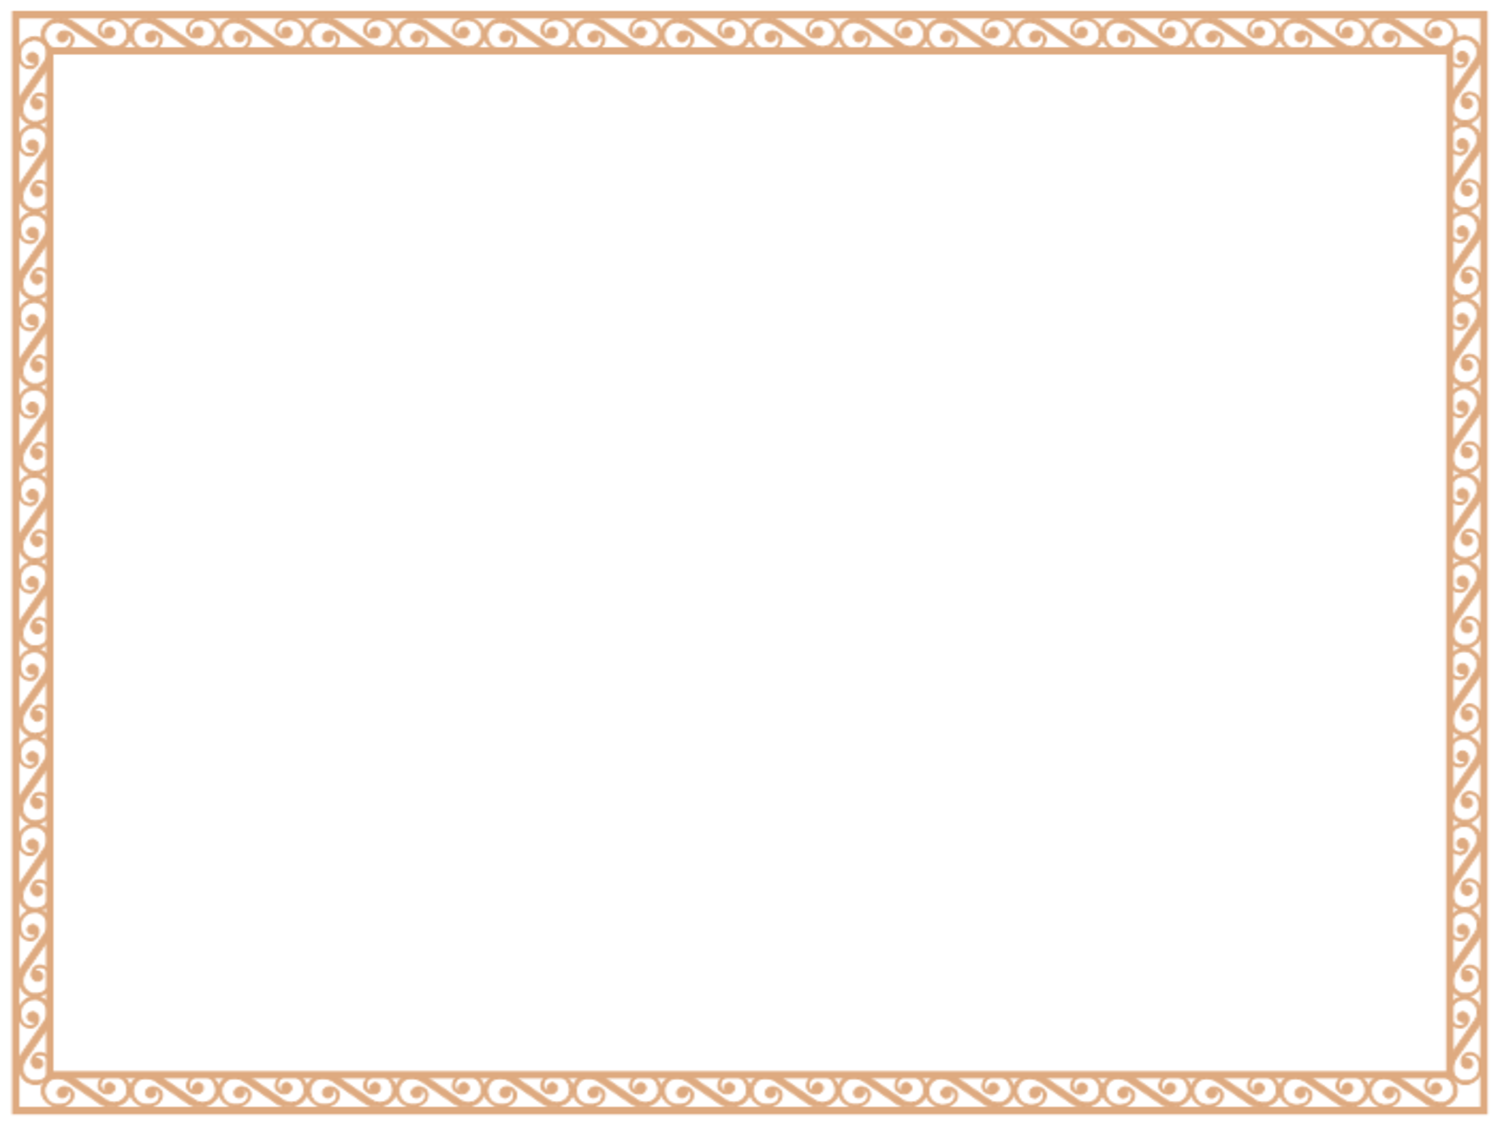 Free Printable Blank Certificate Borders - Clipart library